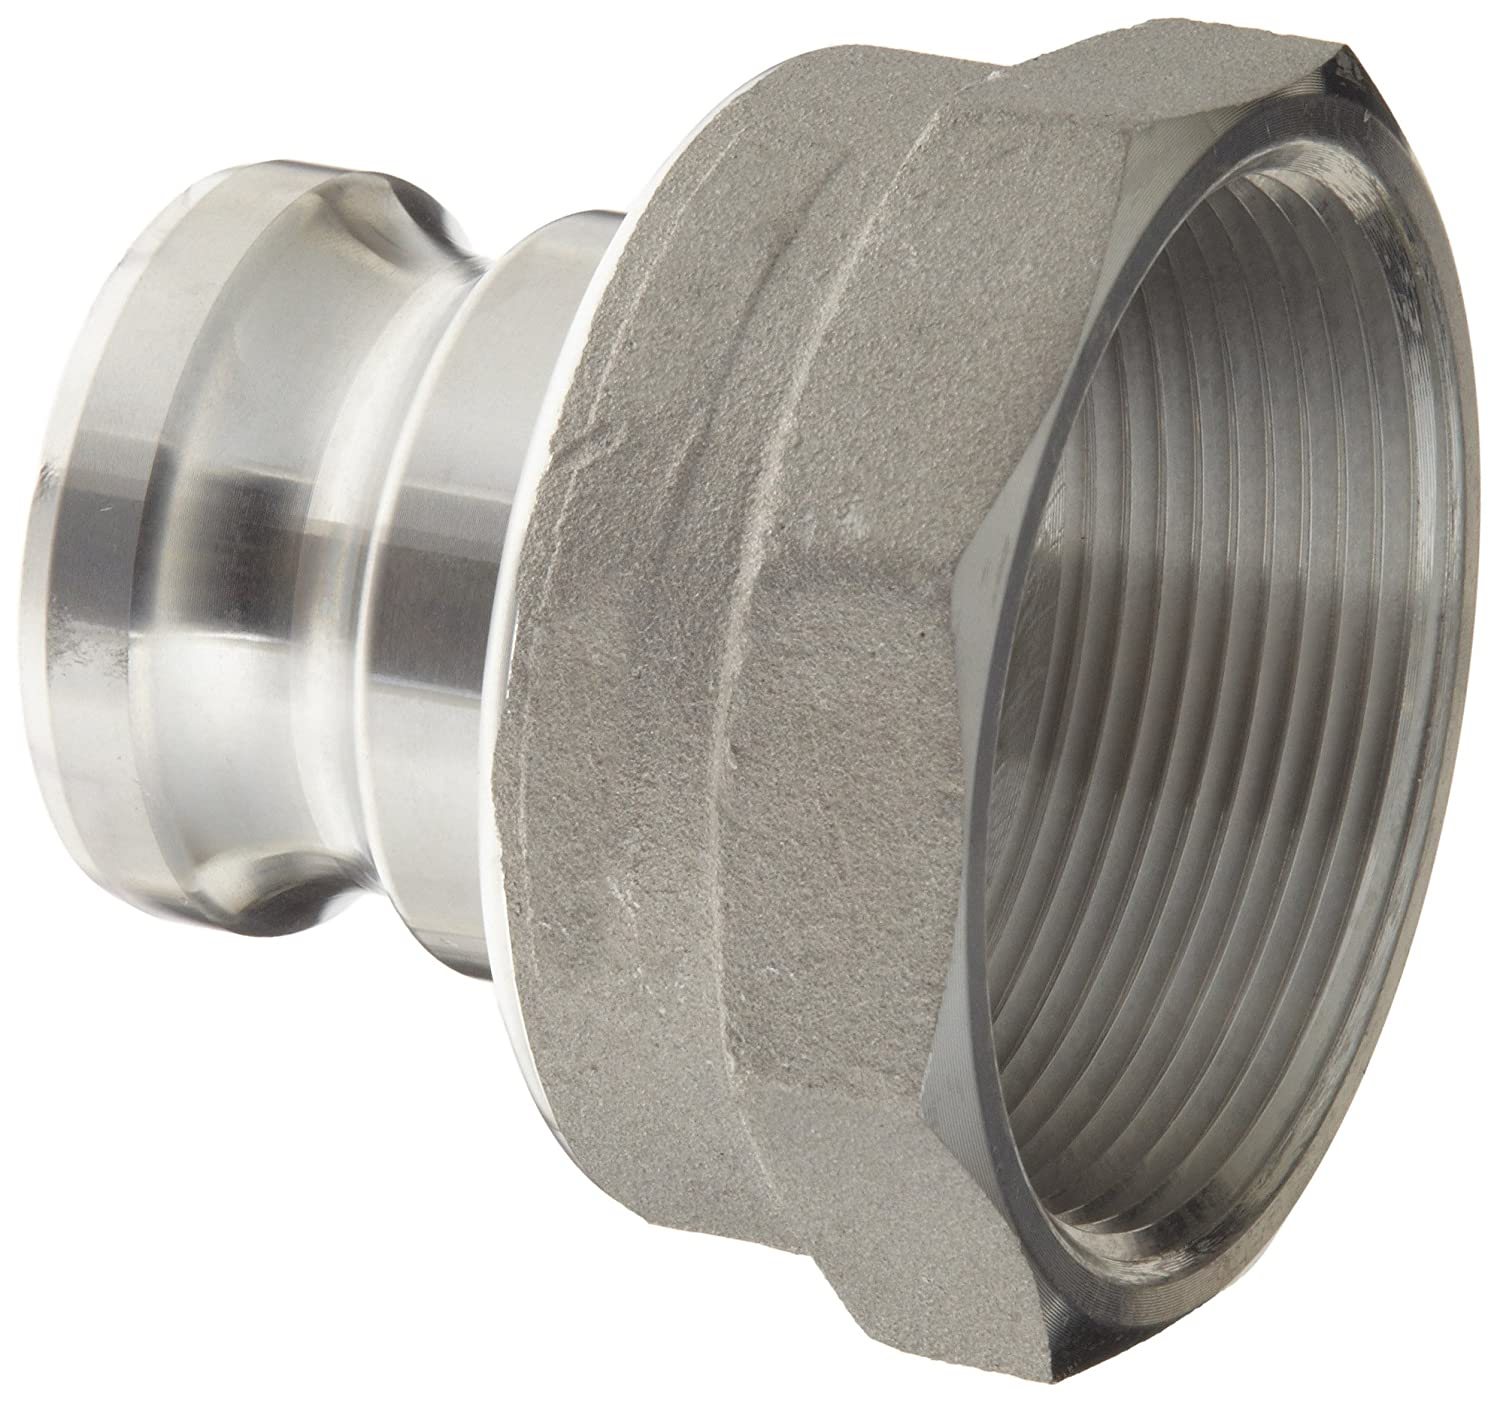 2 Plug x 3 NPT Female Dixon 2030-A-AL Aluminum Type A Cam and Groove Reducing Hose Fitting